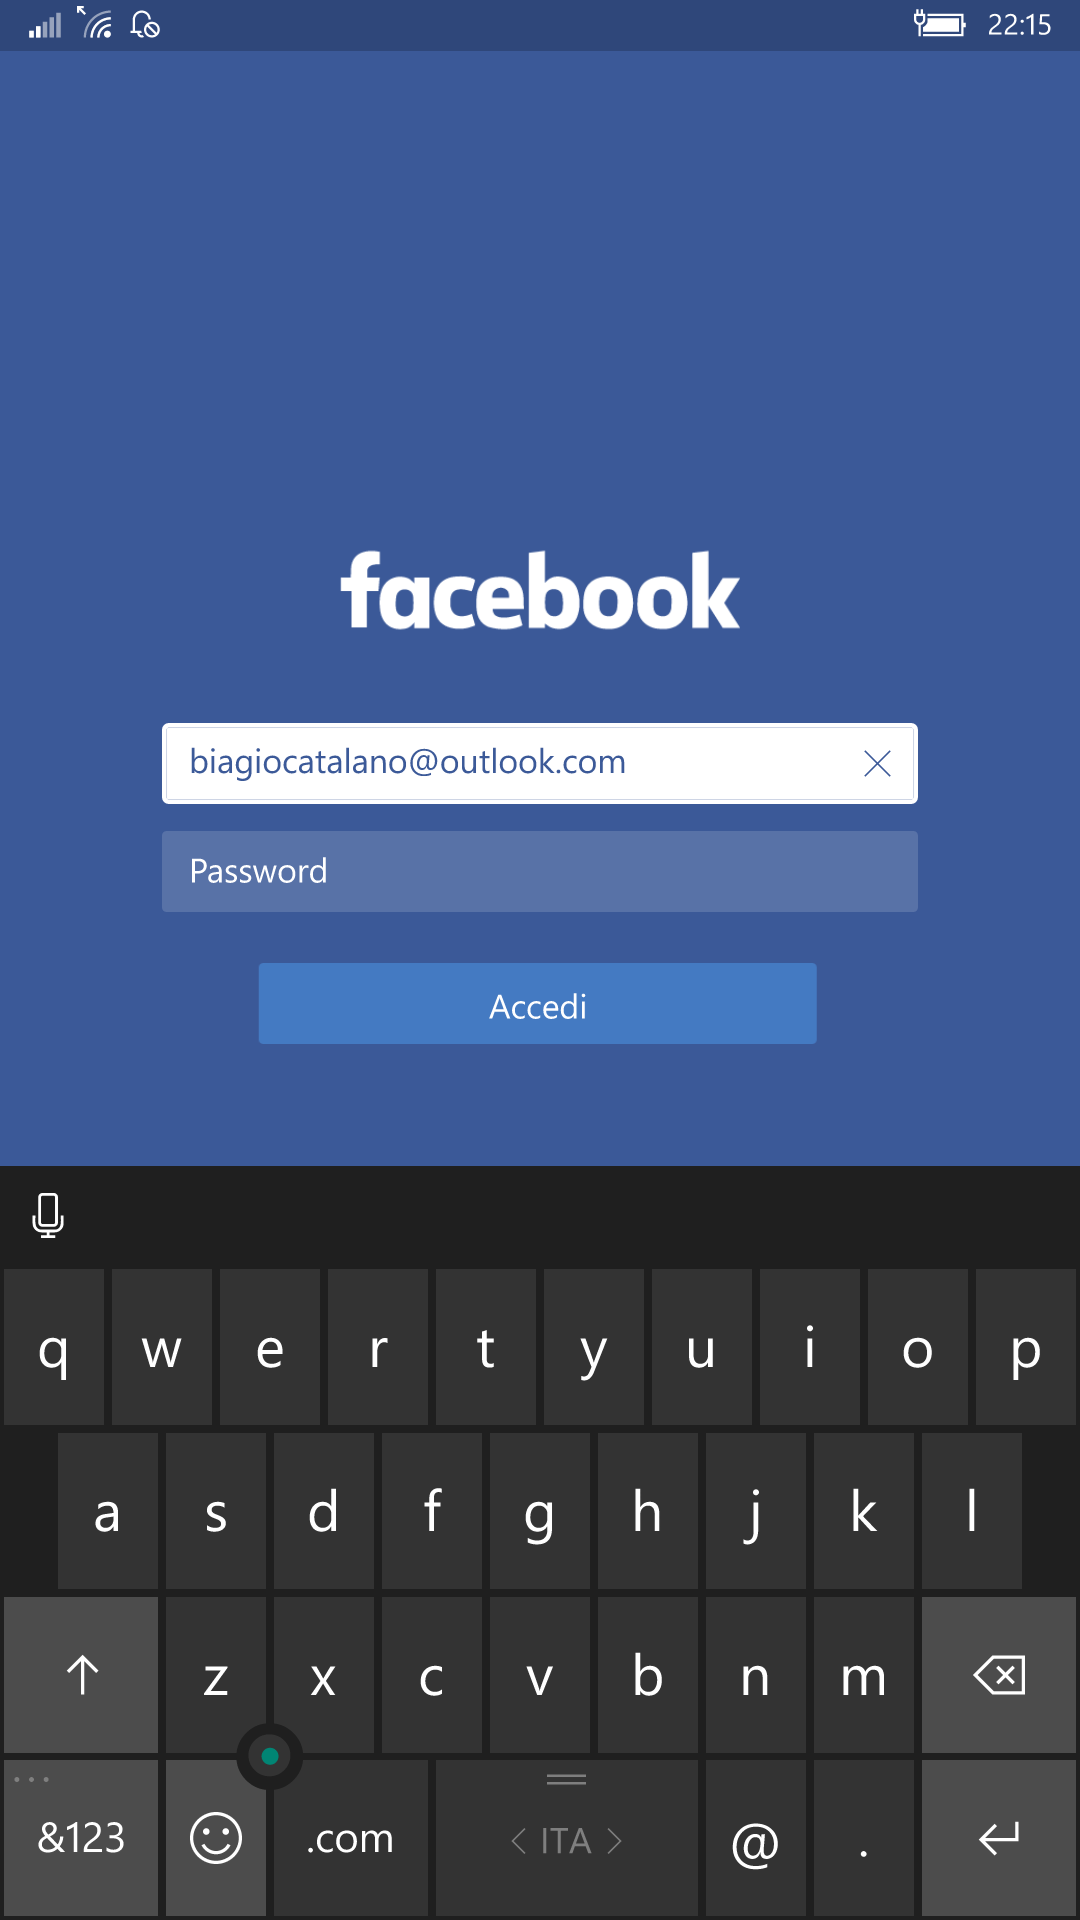 Facebook by Microsoft - Windows 10 Mobile - 1